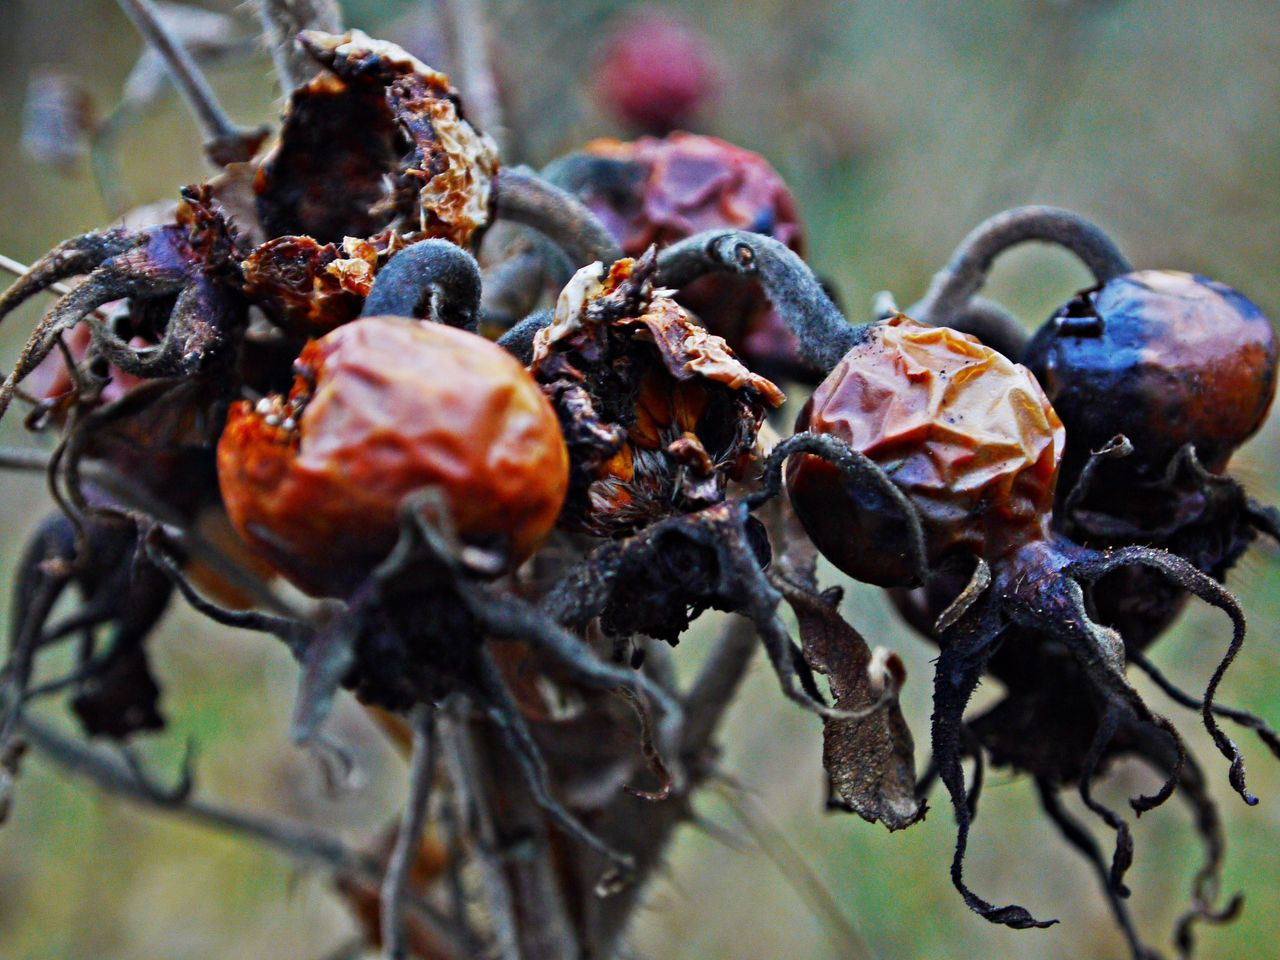 Beauty In Nature Bird Feed Close-up Day Dry Fruits Focus On Foreground Fruit Nature No People Outdoors Plant Rose Hips Wintertime